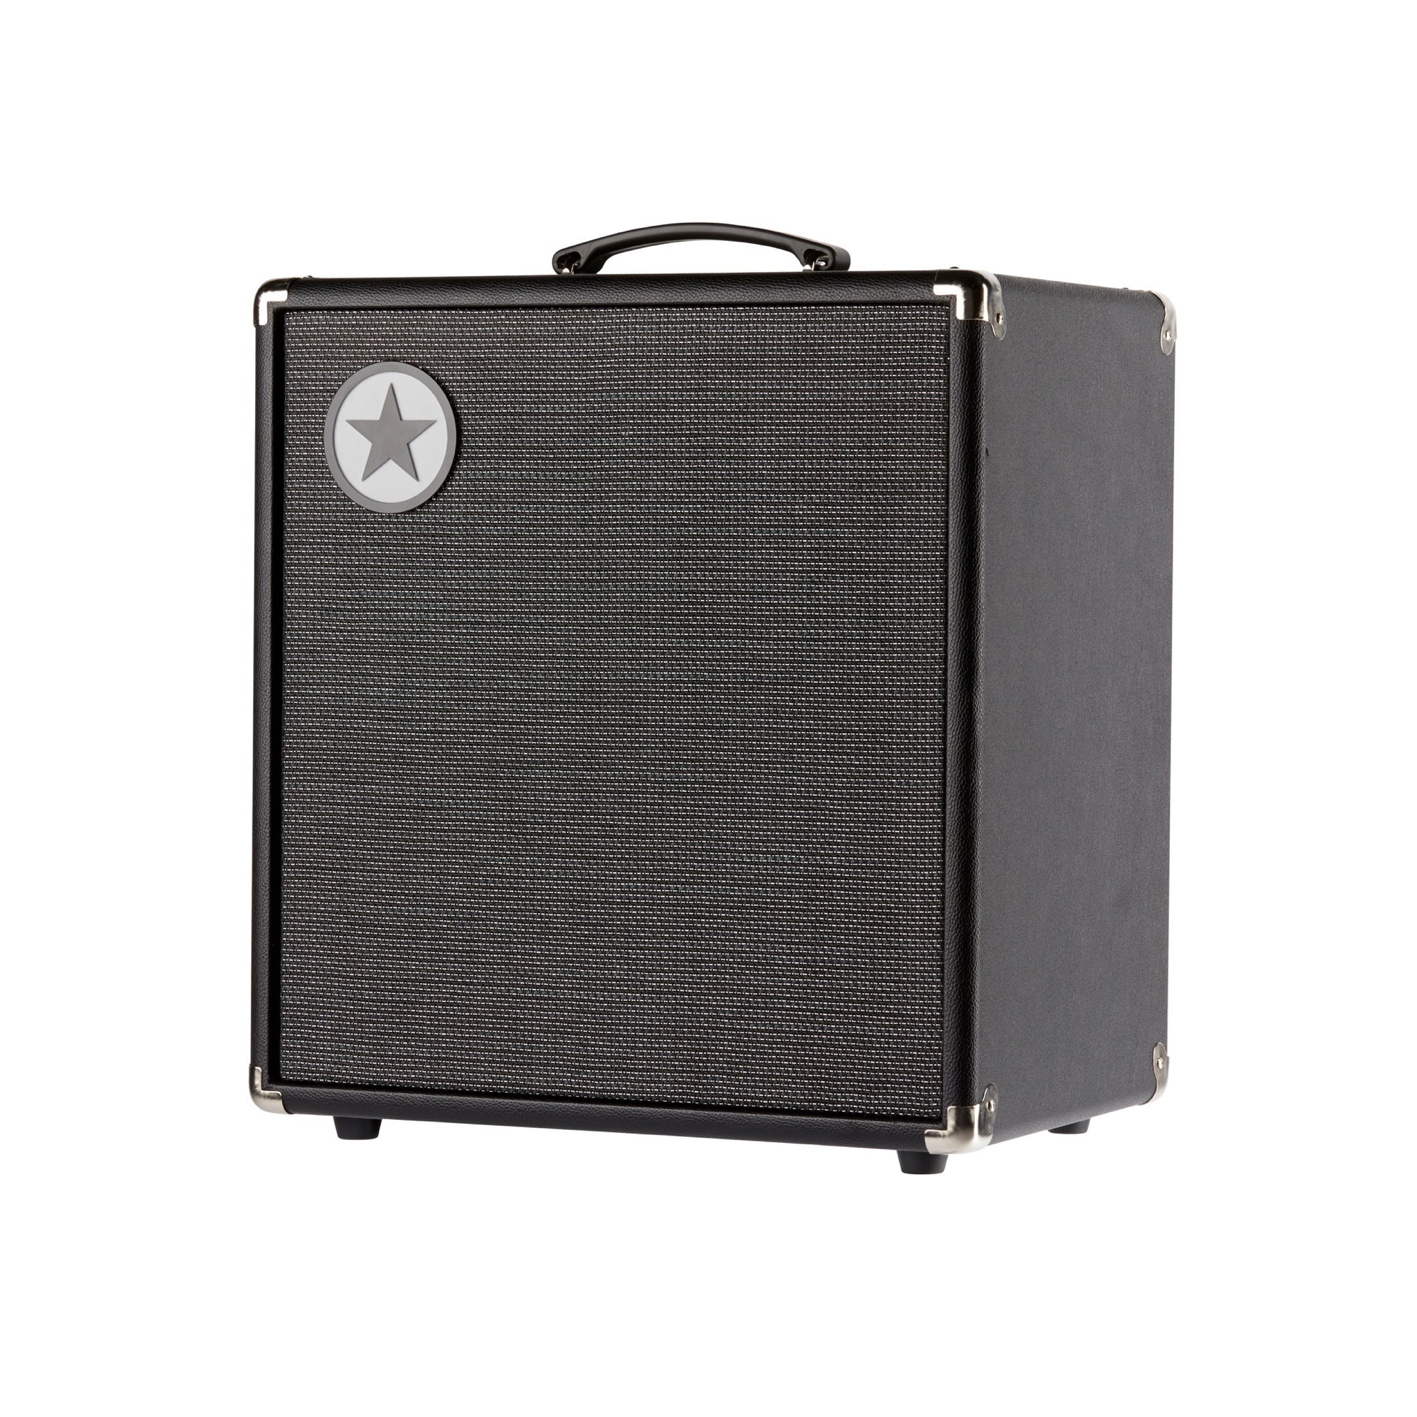 Blackstar Unity 120 Bass Amp (Online Special Offer)